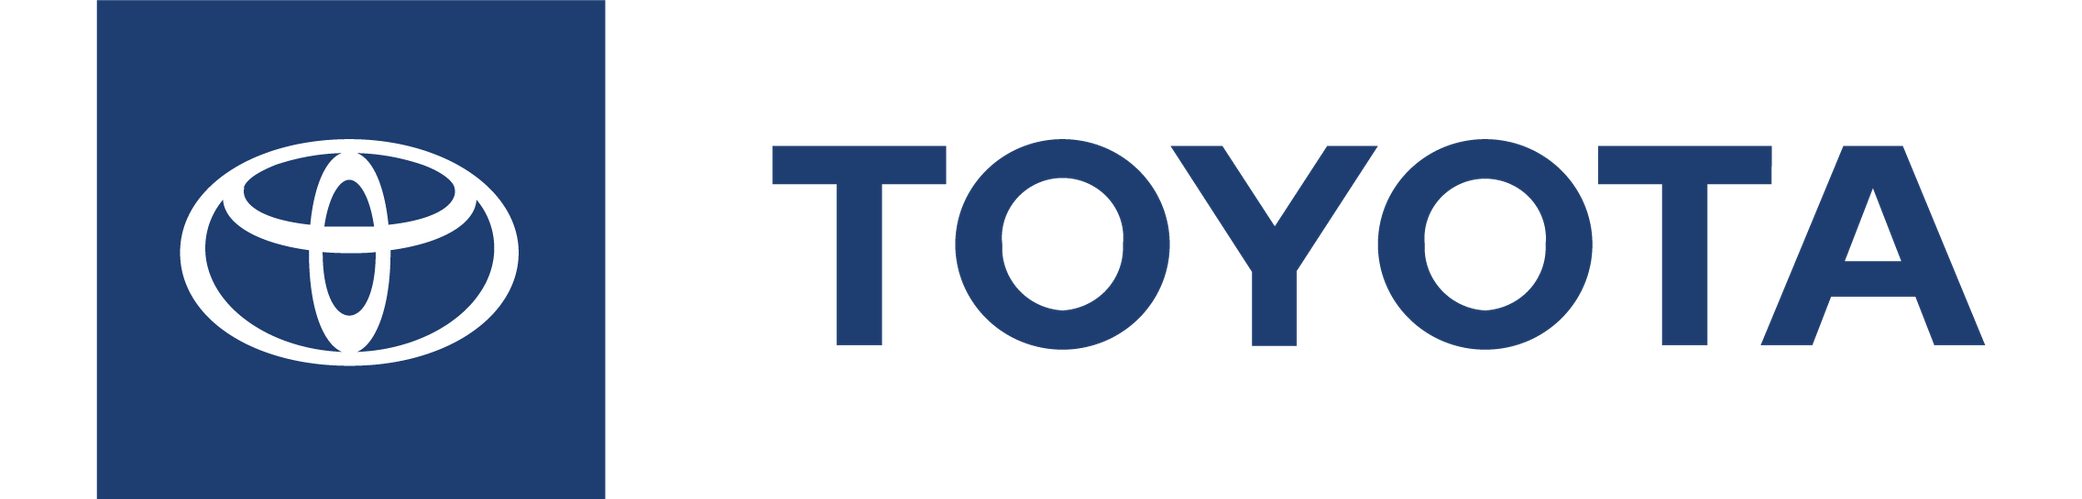 toyota@10x.png